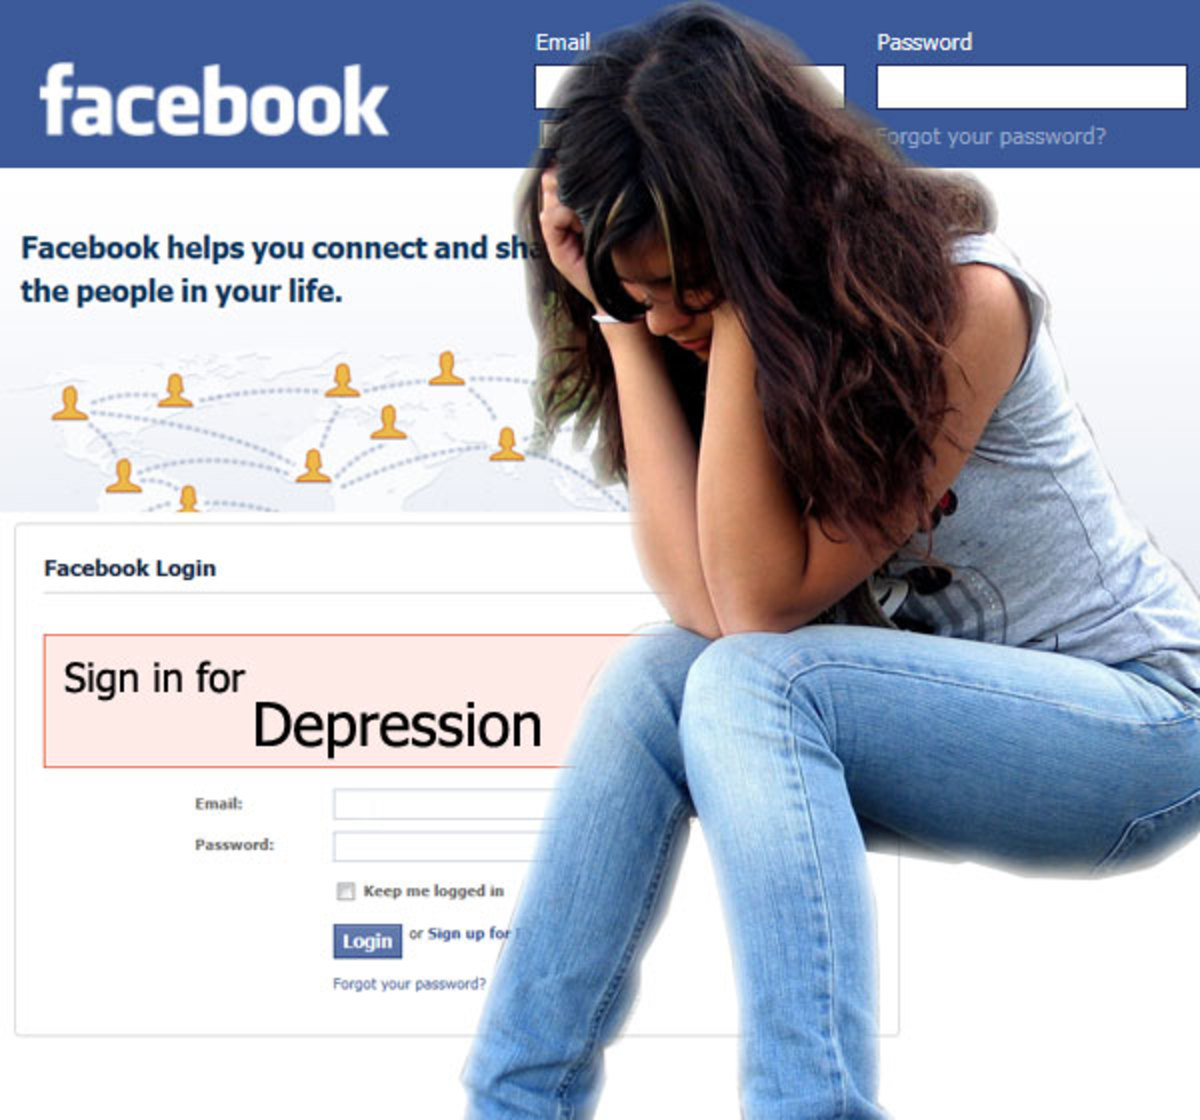 Use of social media has increased depression amoungst the young and the teenages